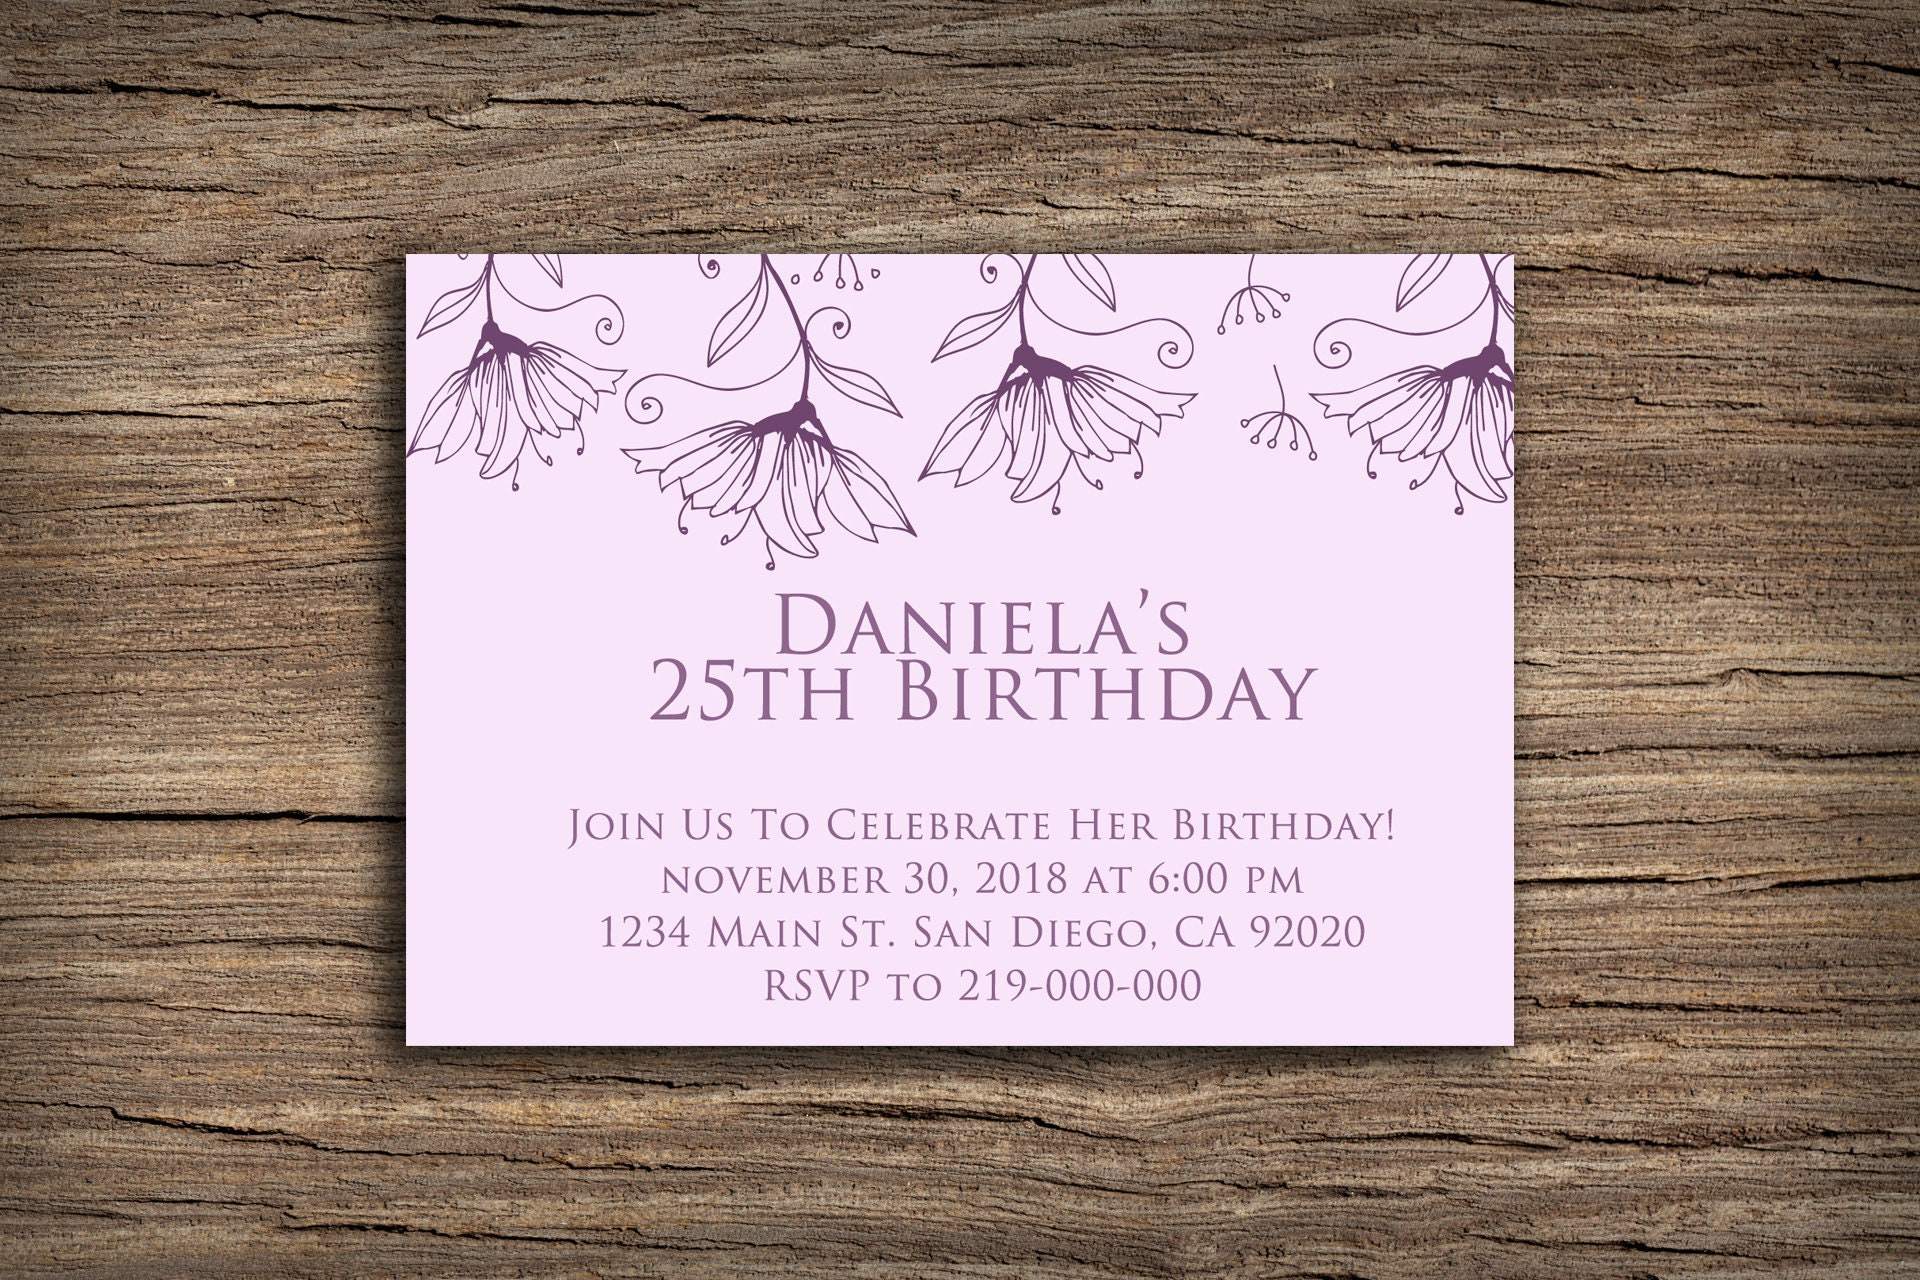 Printable Birthday Invitation Card Purple Flowers